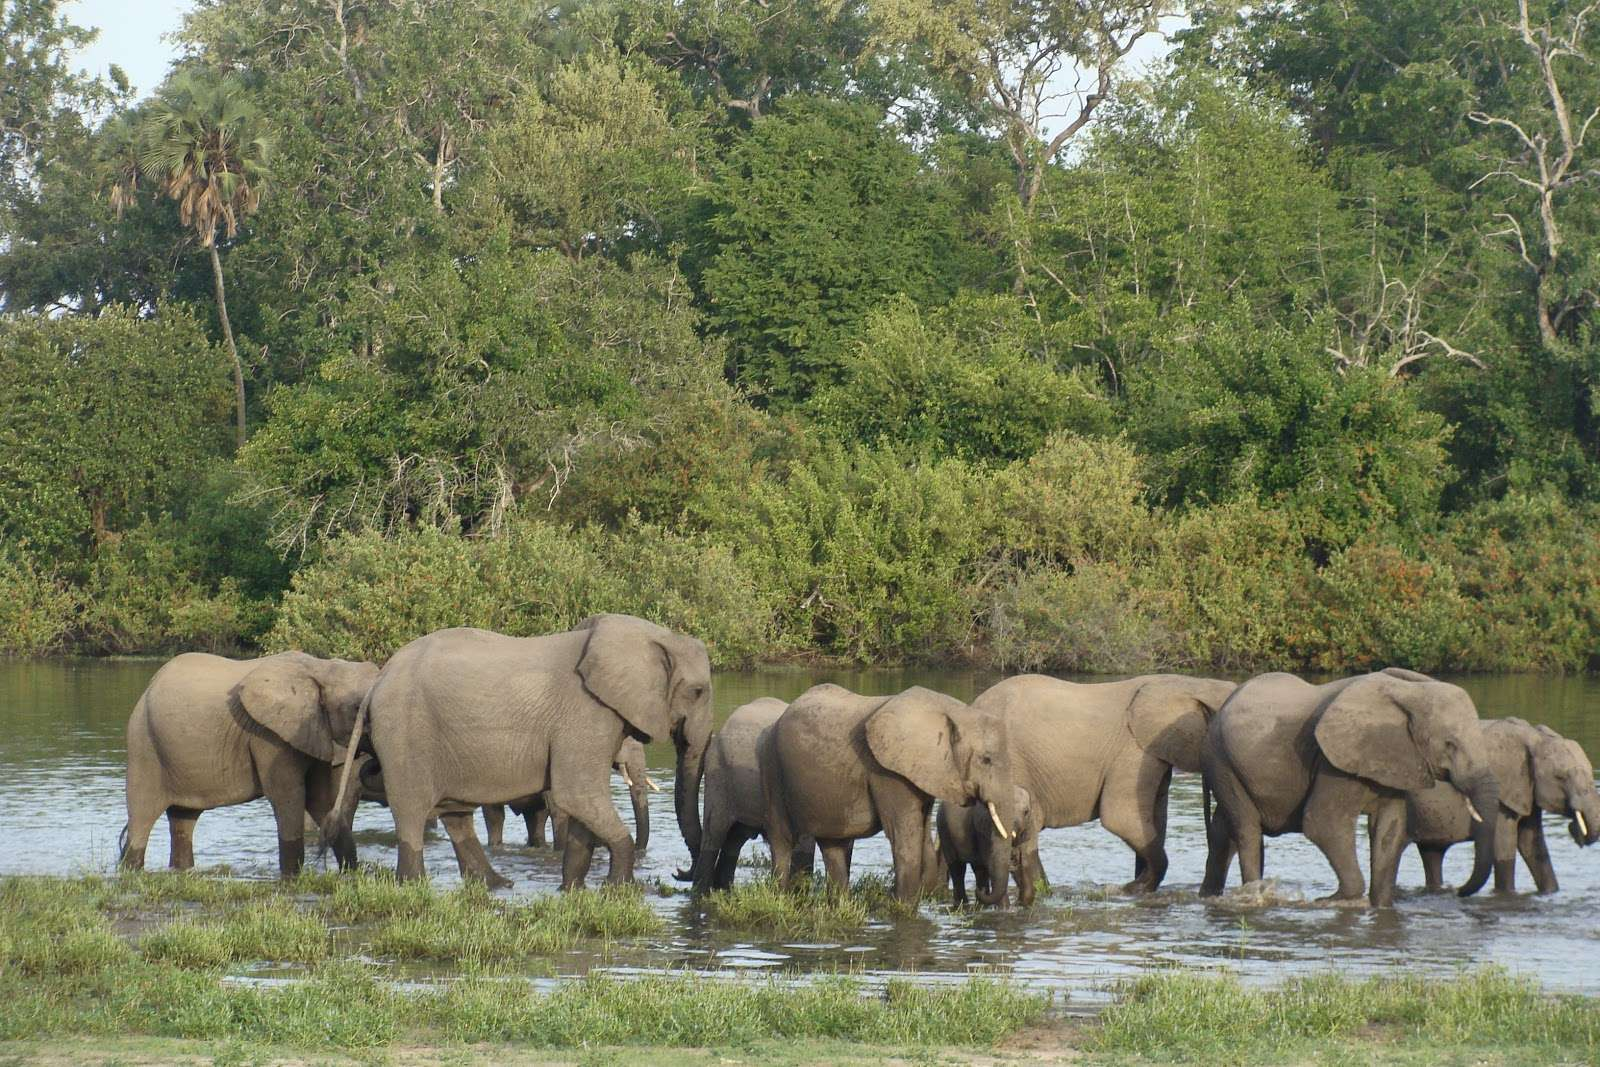 4 DAYS 3 NIGHTS SELOUS NATIONAL PARK 4 Day(s) Wildlife Experience Zanzibar Tours & Safaris Ltd